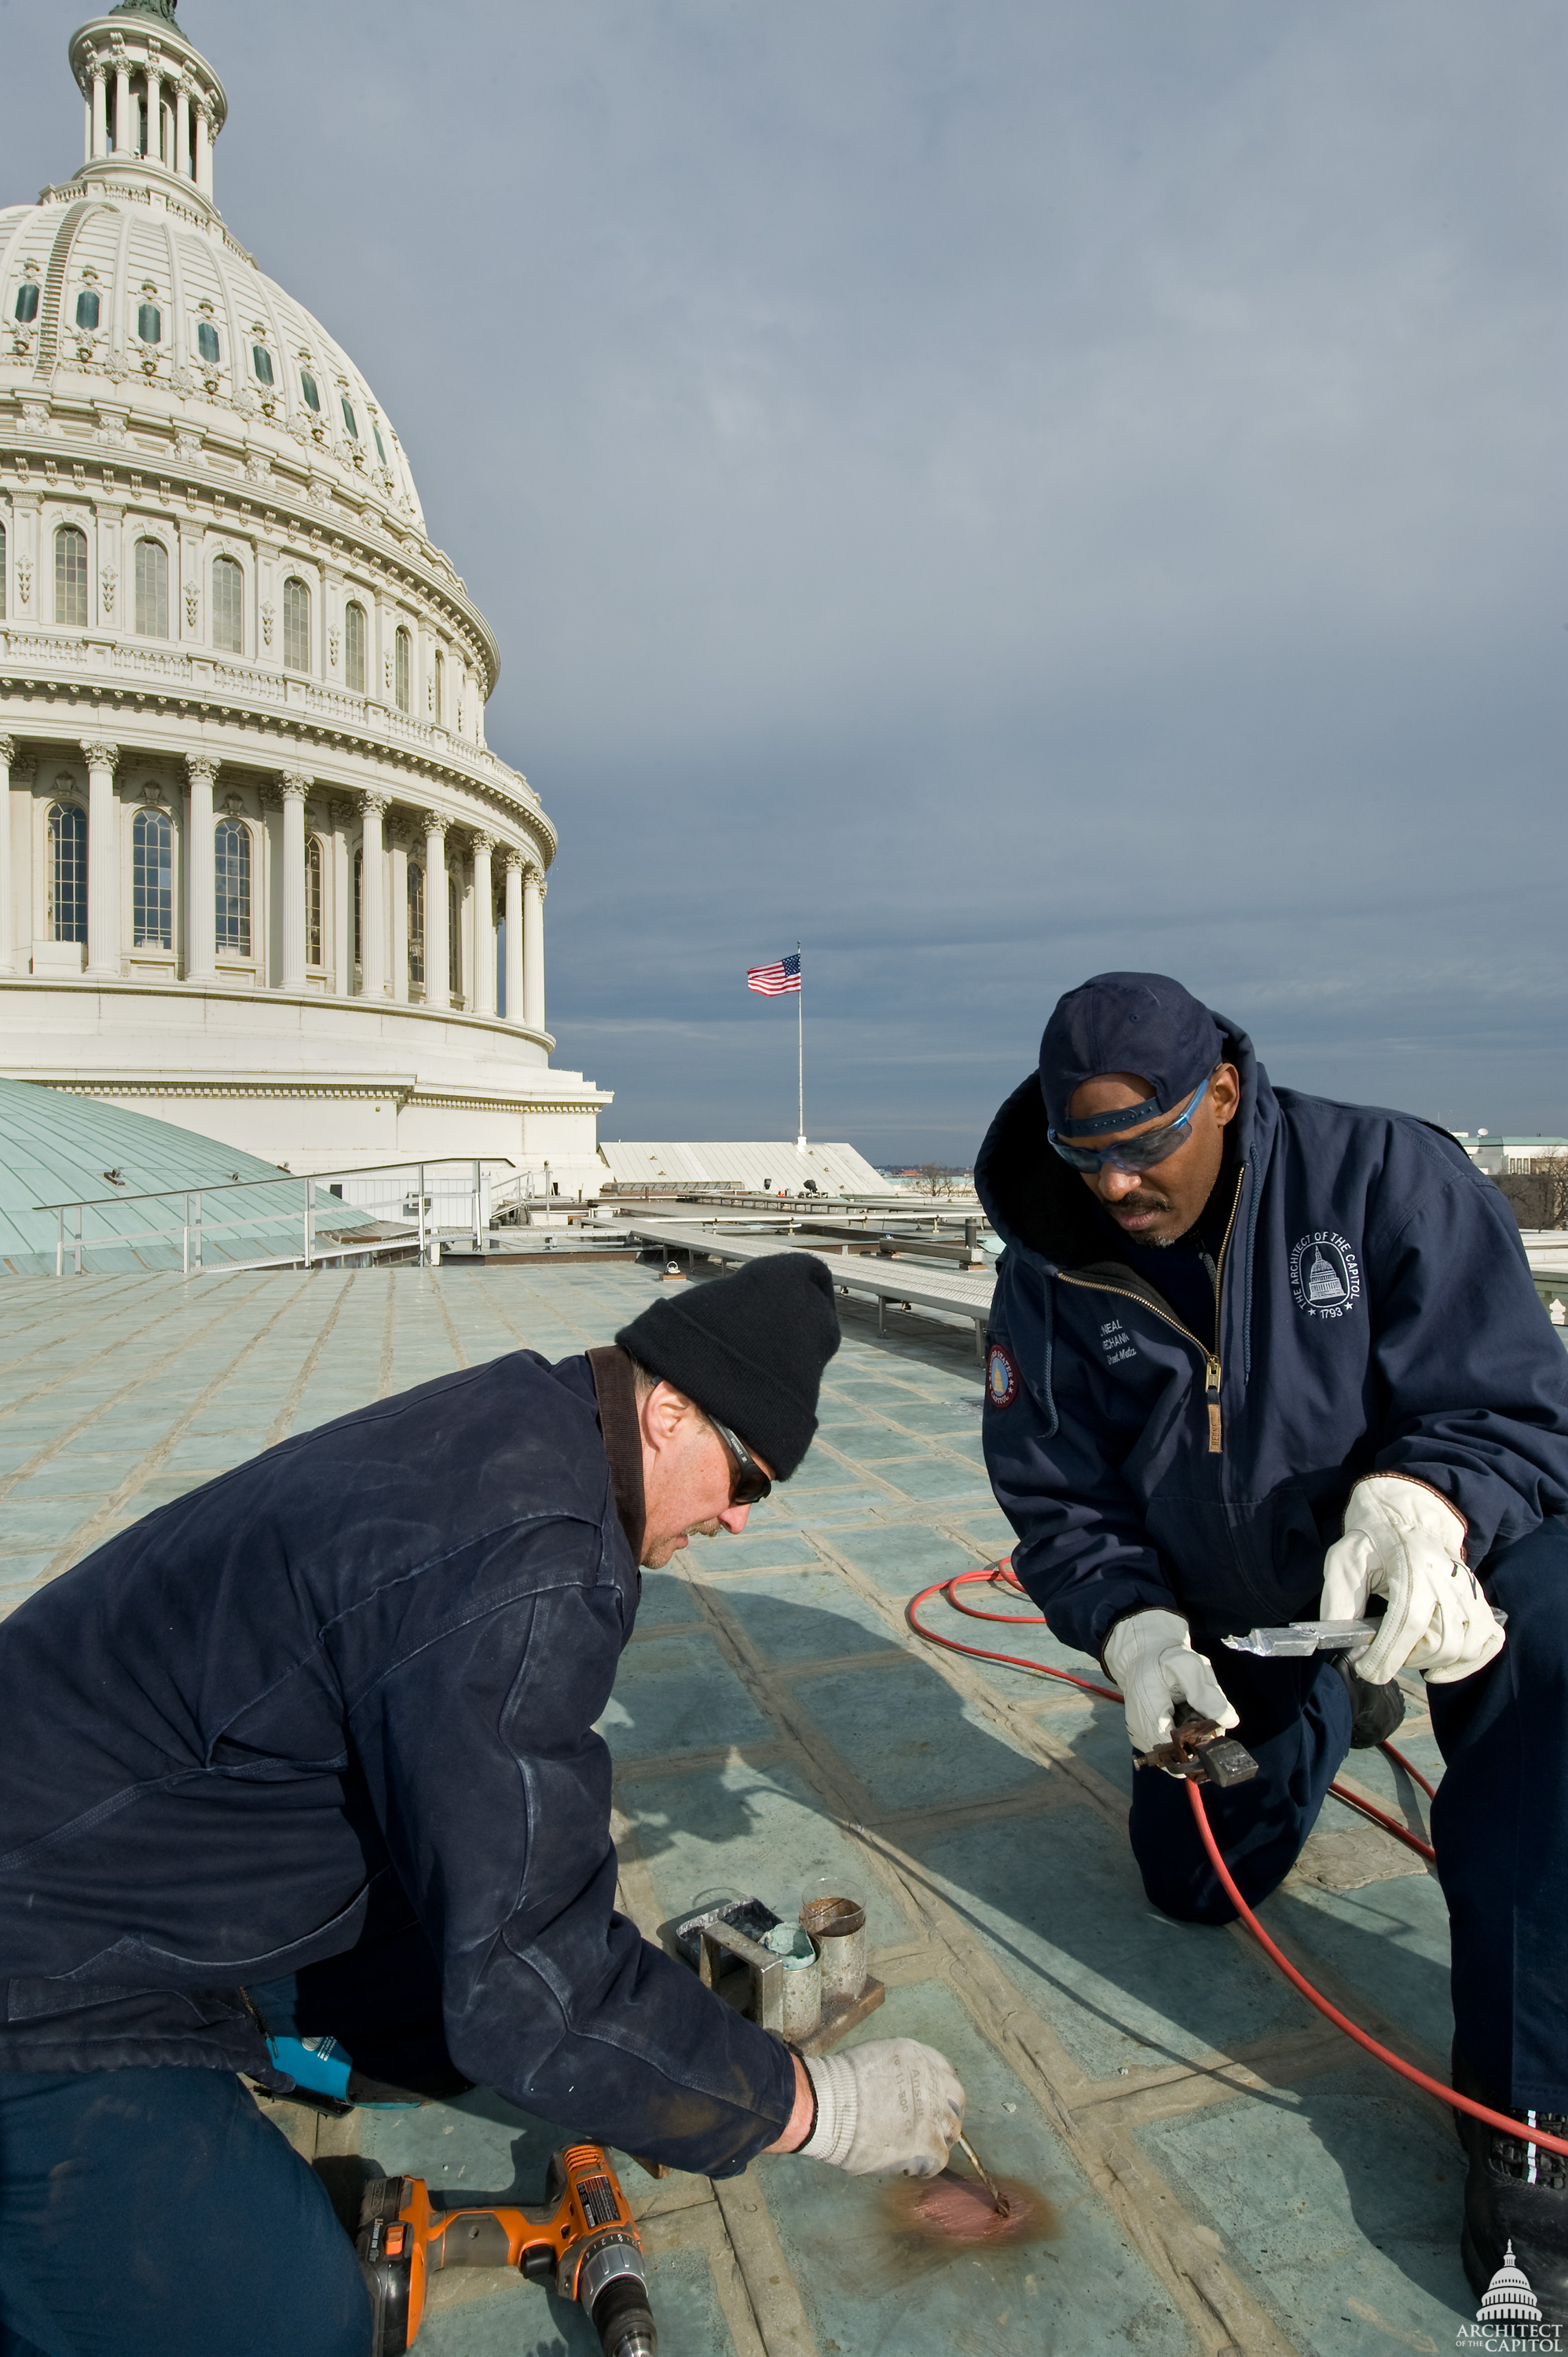 AOC employees patching the roof of the U.S. Capitol.